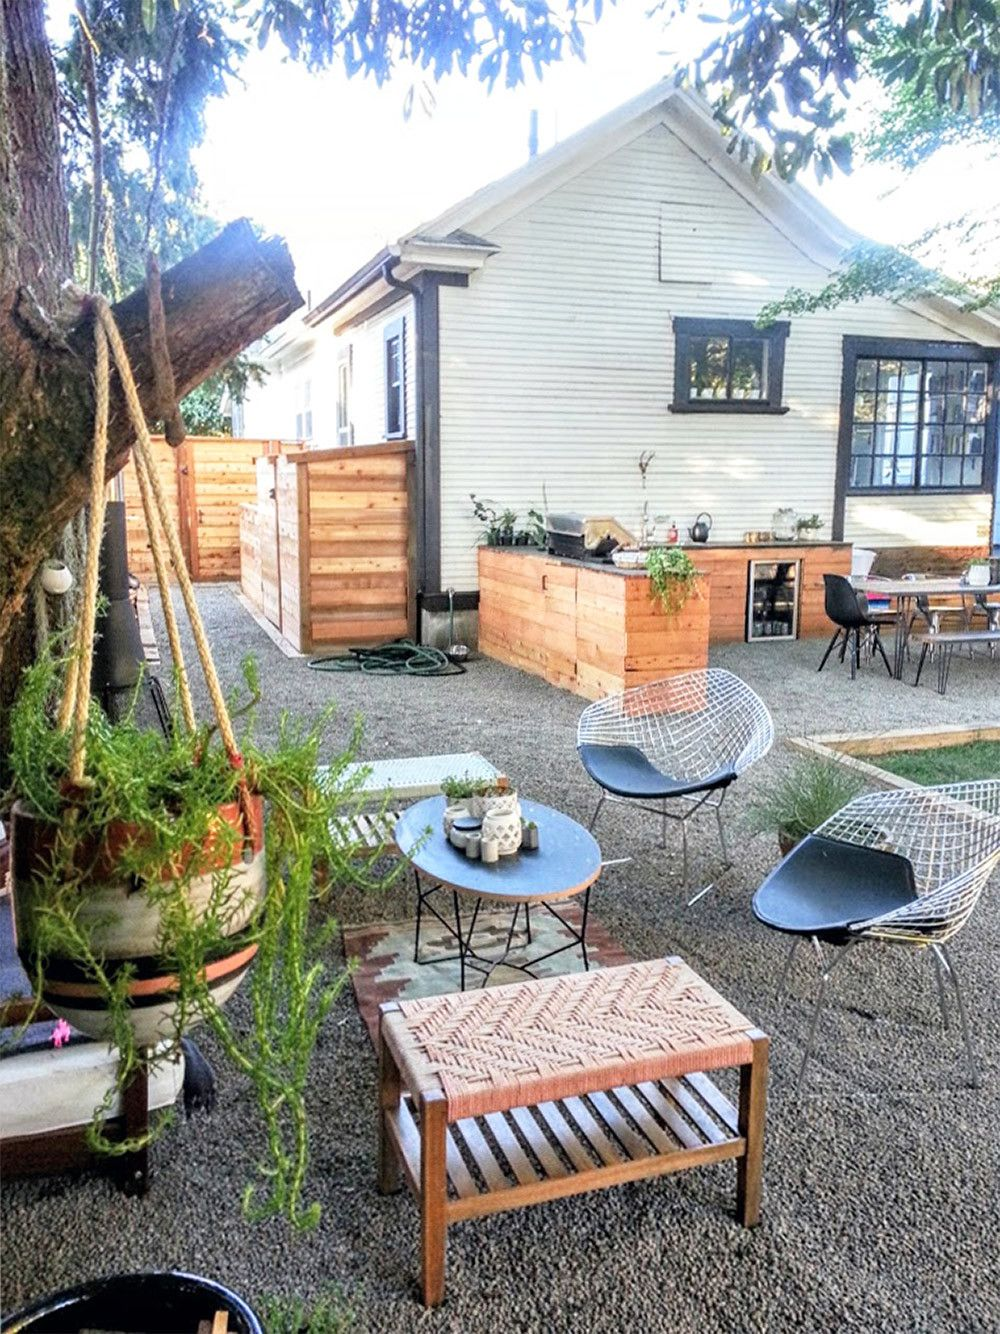 Before & After: The Little NoPo Farmhouse Yard | Backyard ...